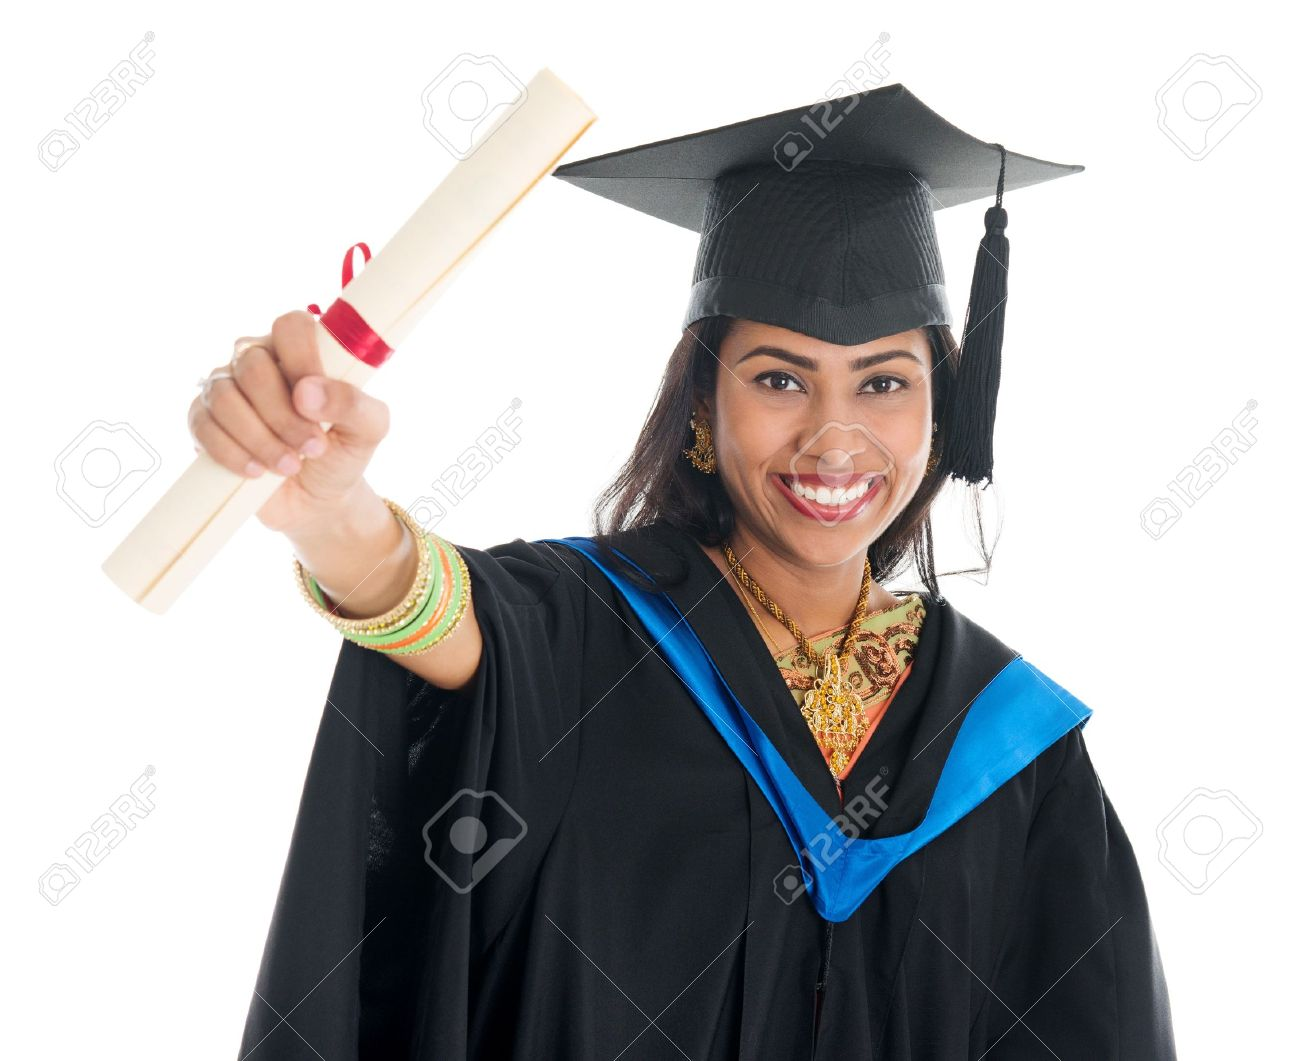 Happy Indian Graduate Student In Graduation Gown And Cap Showing ...